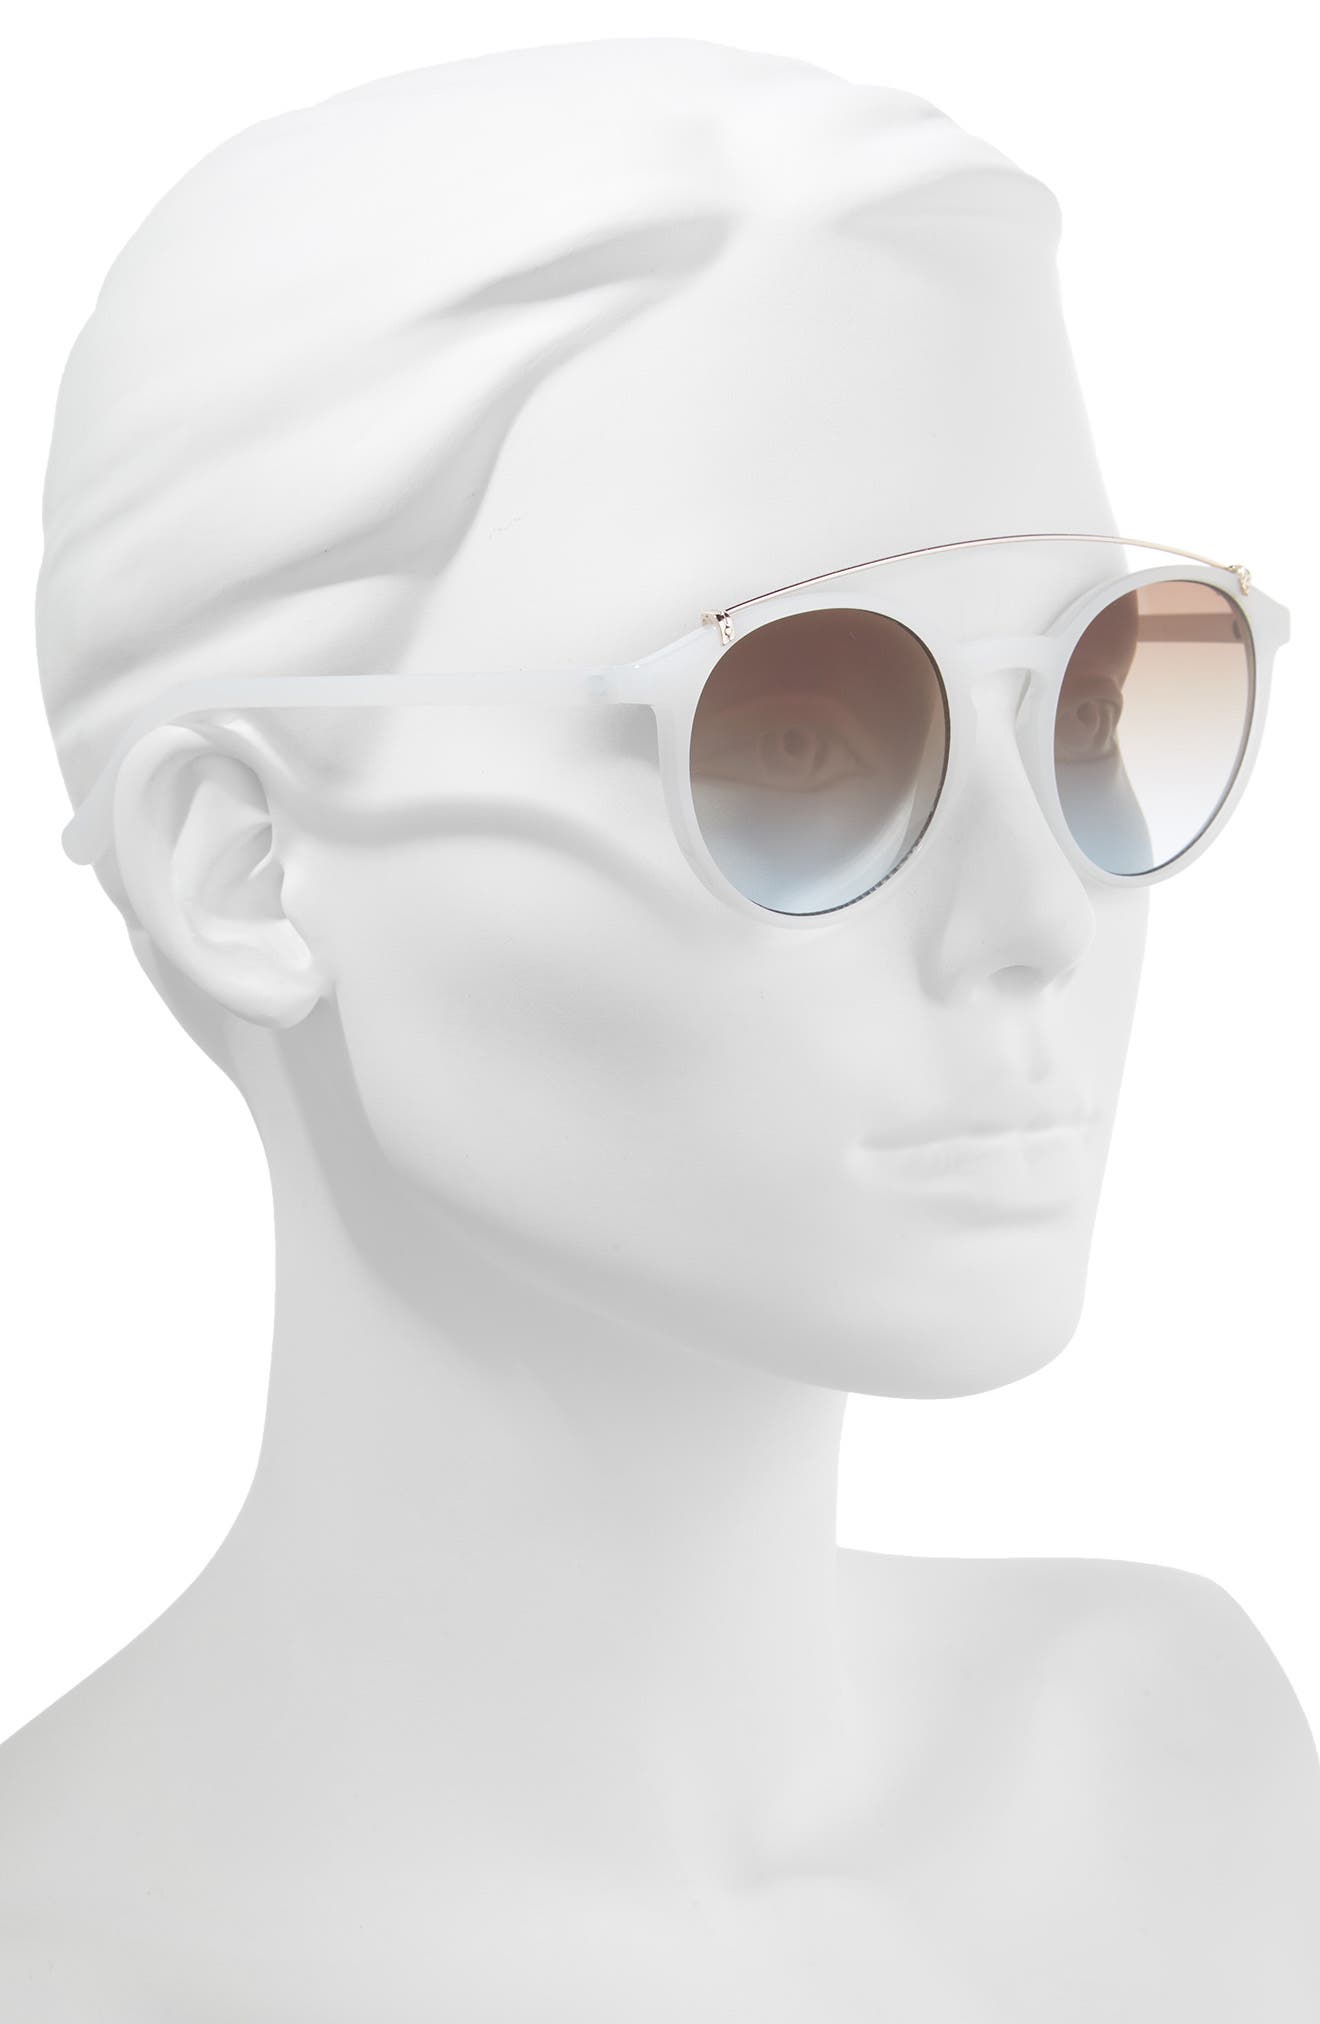 Round Aviator Sunglasses,                             Alternate thumbnail 2, color,                             100